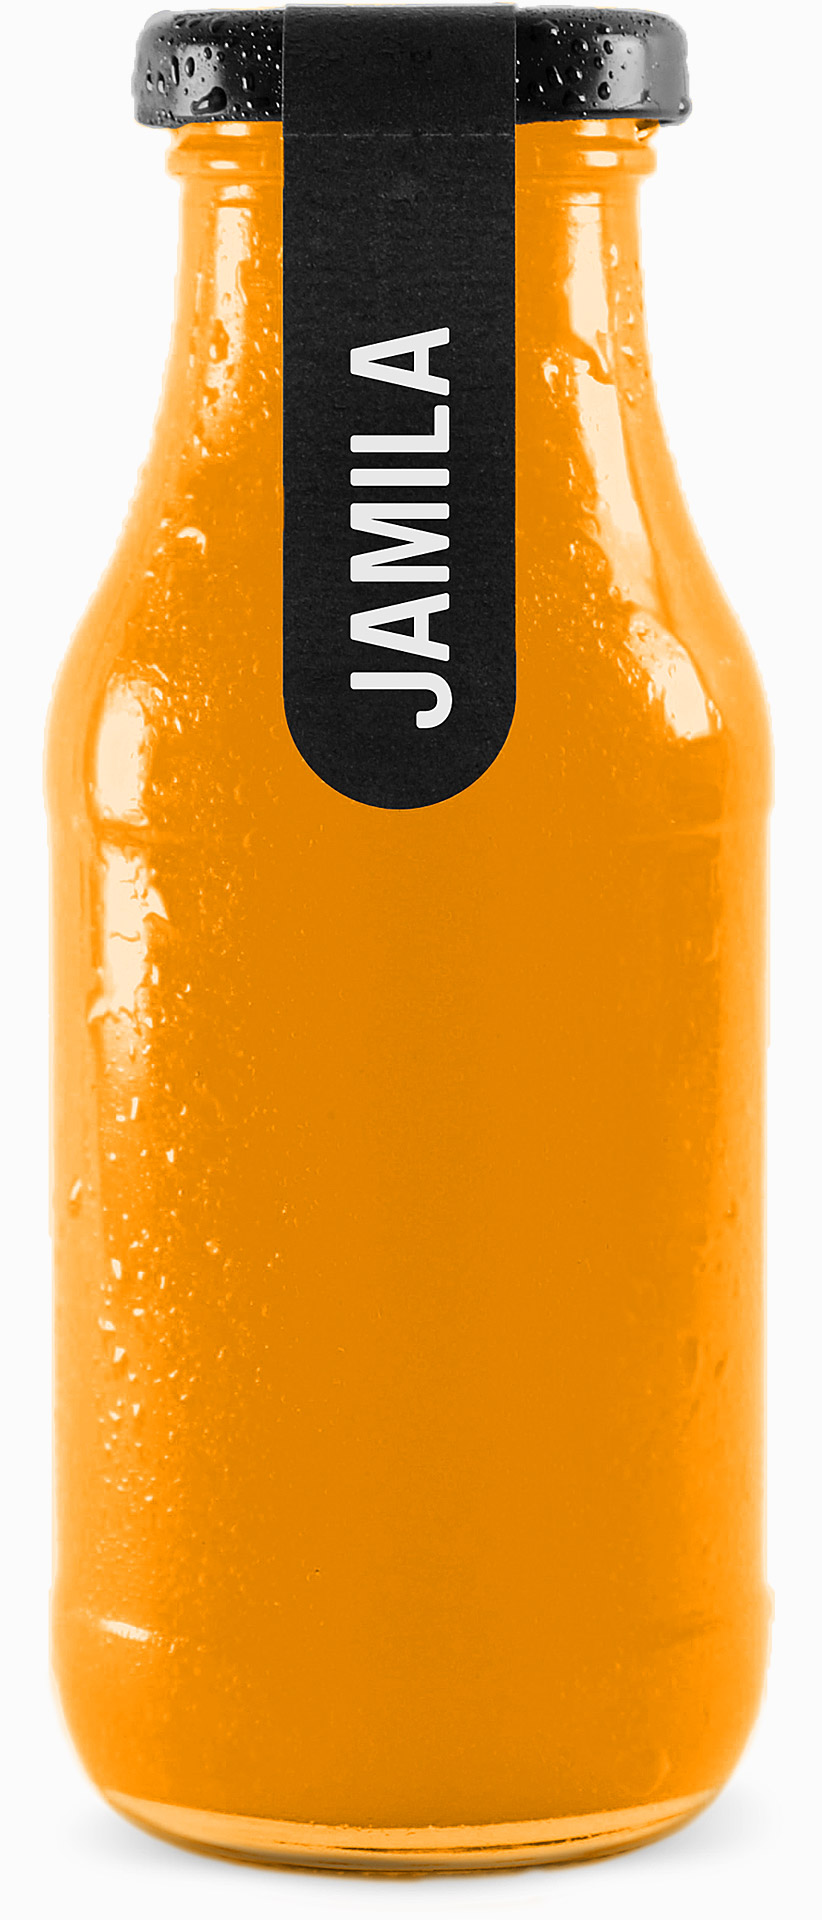 Jamila, Bio indonesicher Heiltrank in 270 ml Glasflasche